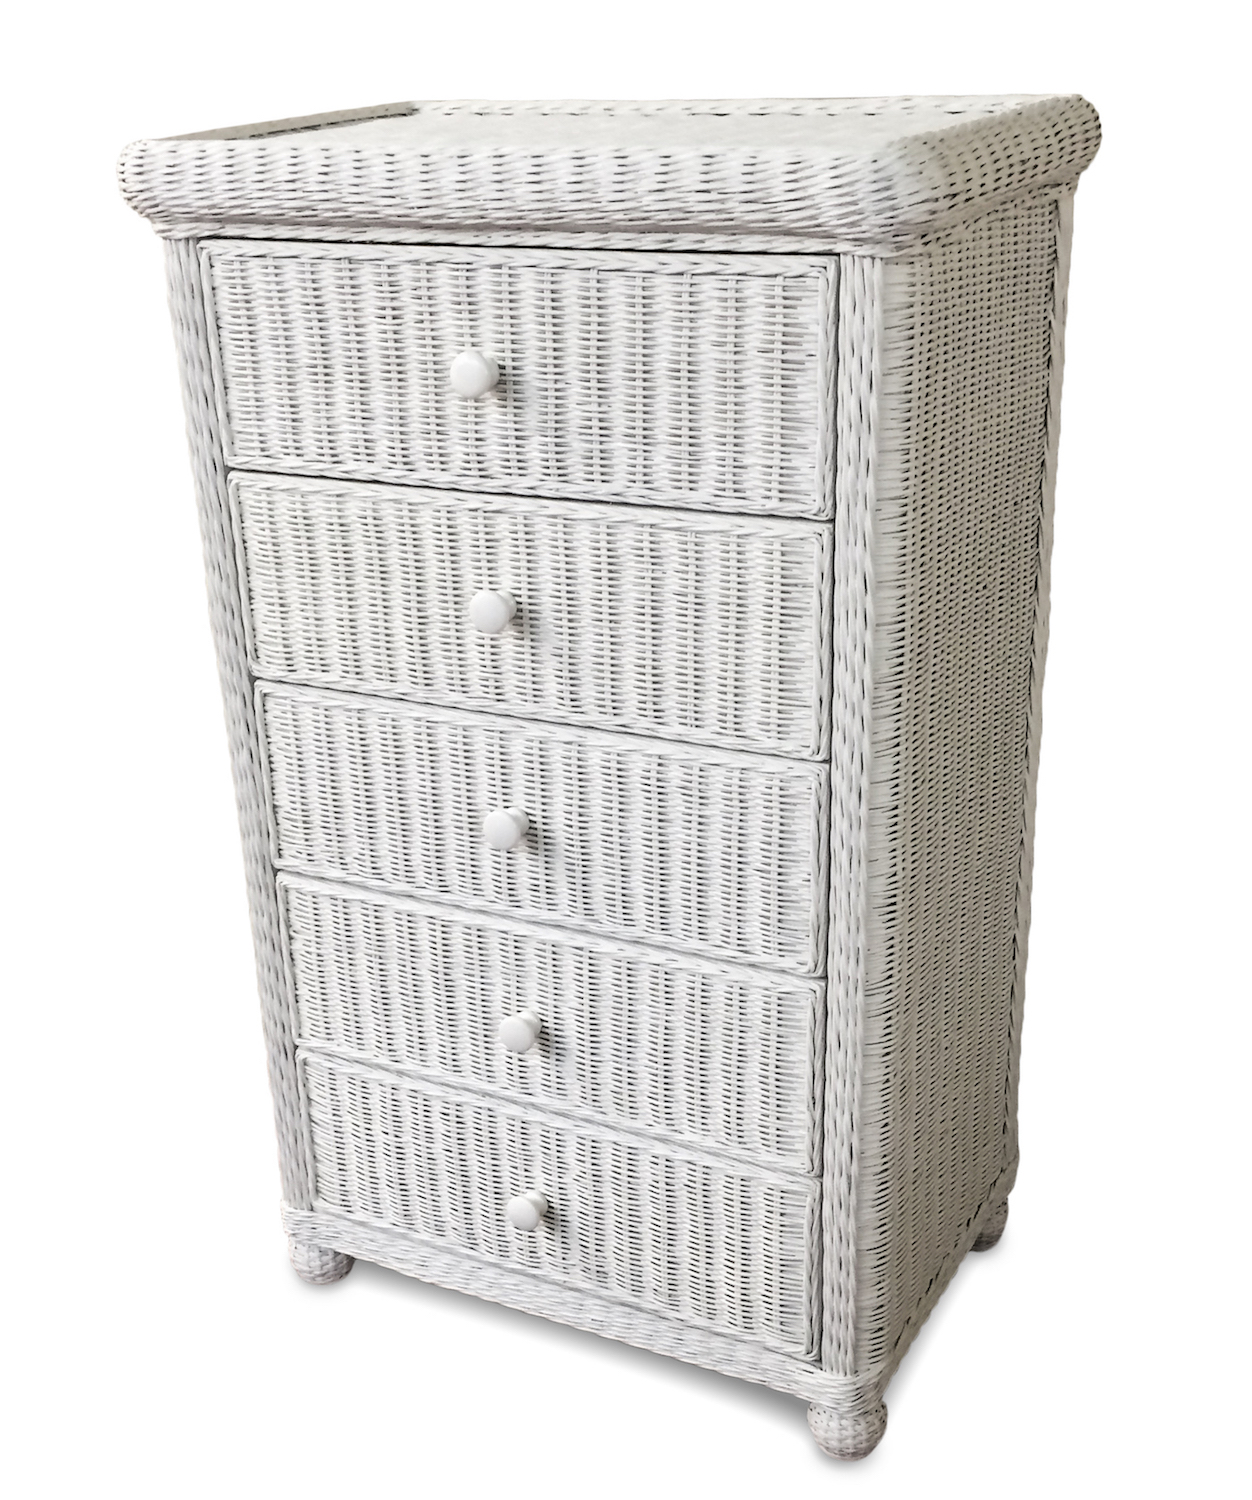 Wicker 5 Drawer Dresser Elana Wicker Paradise